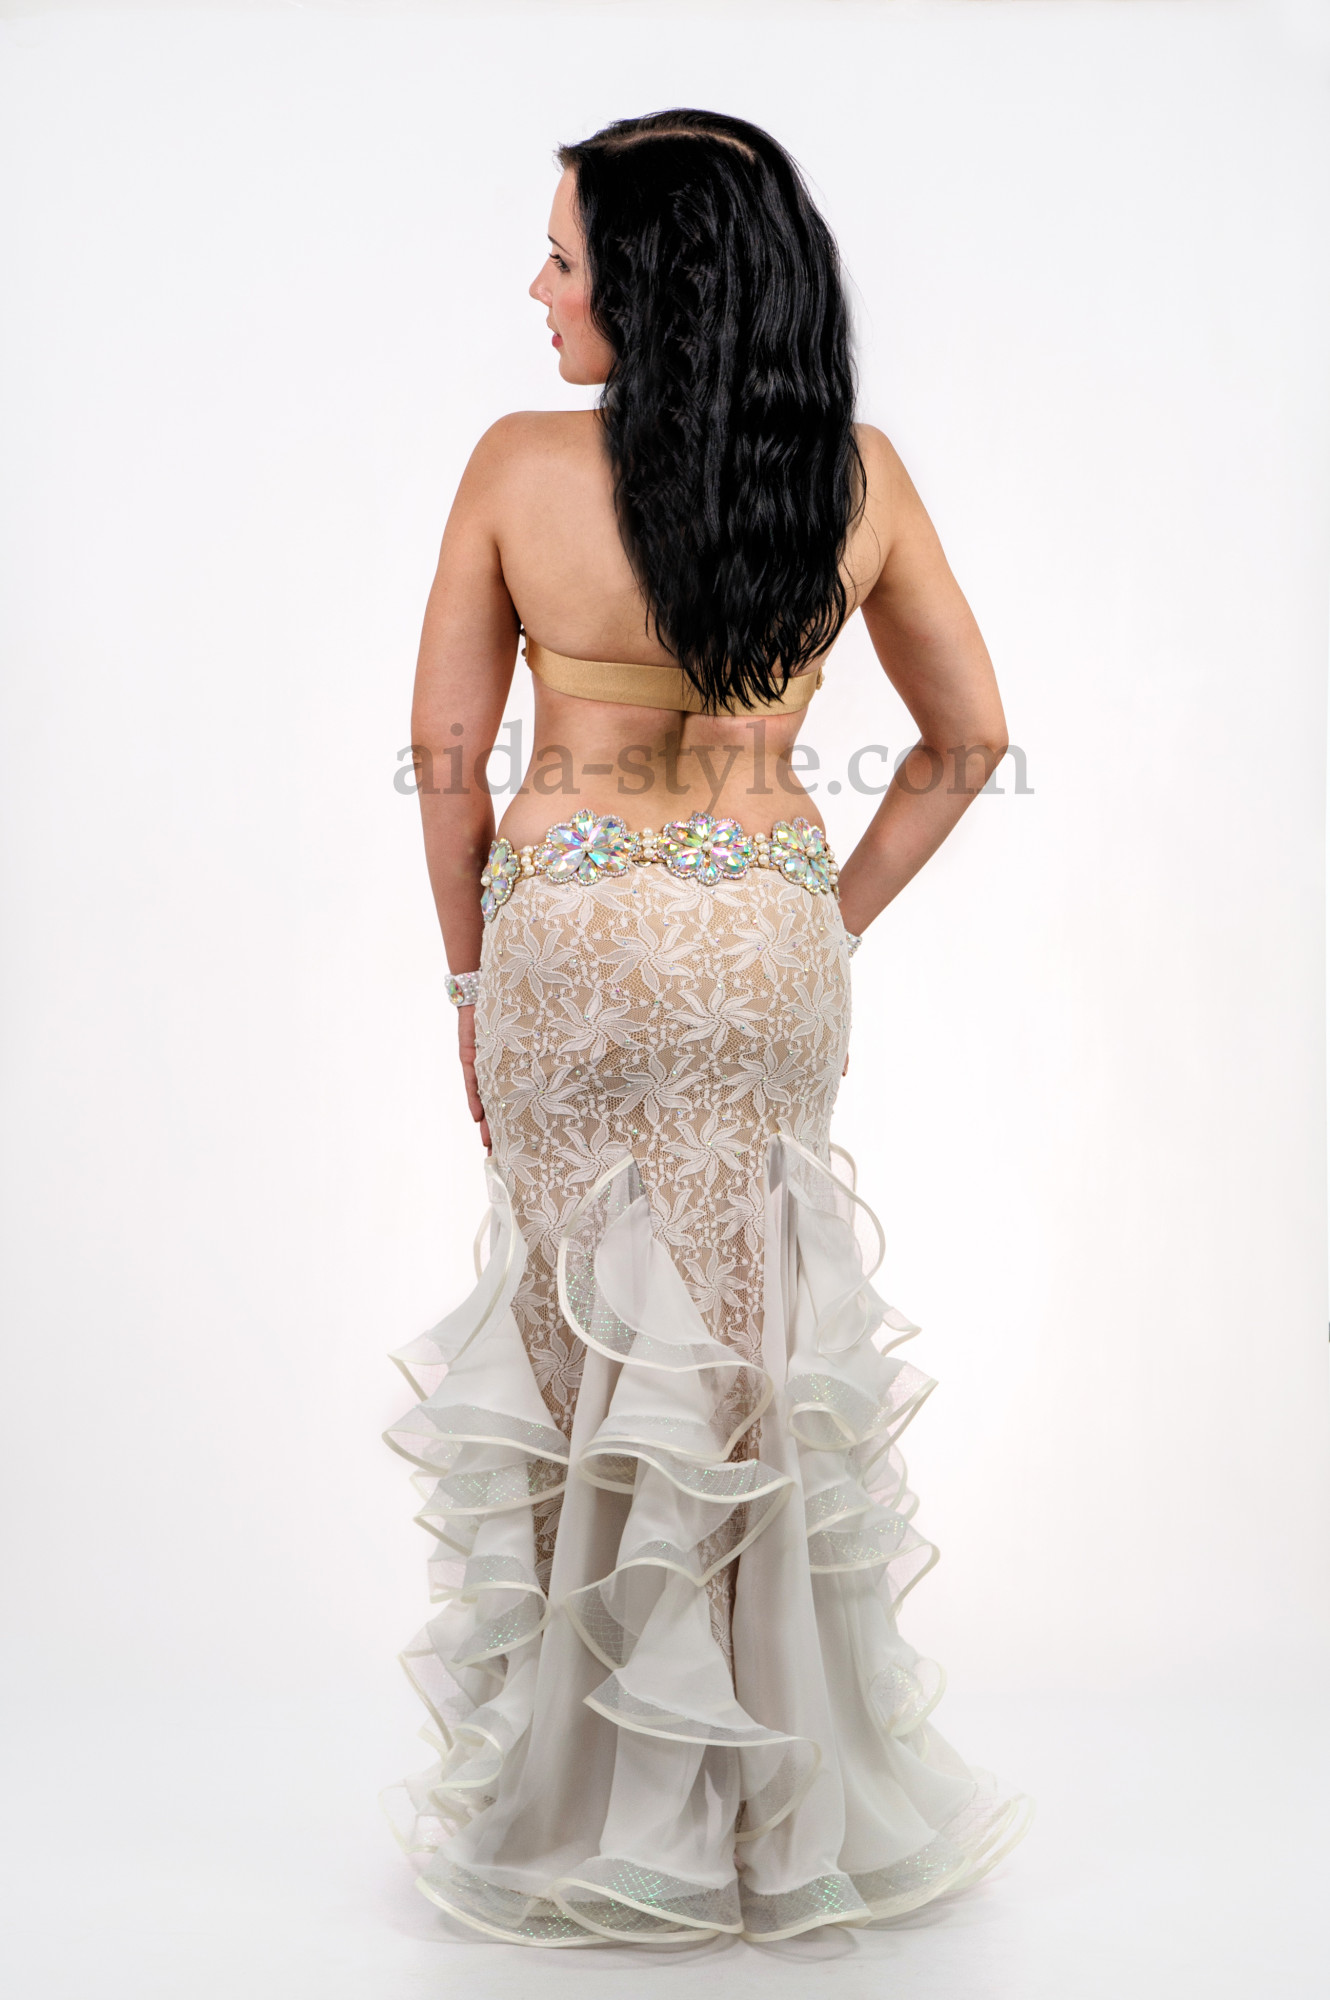 White professional belly dance costume with laces and a cut on the right side